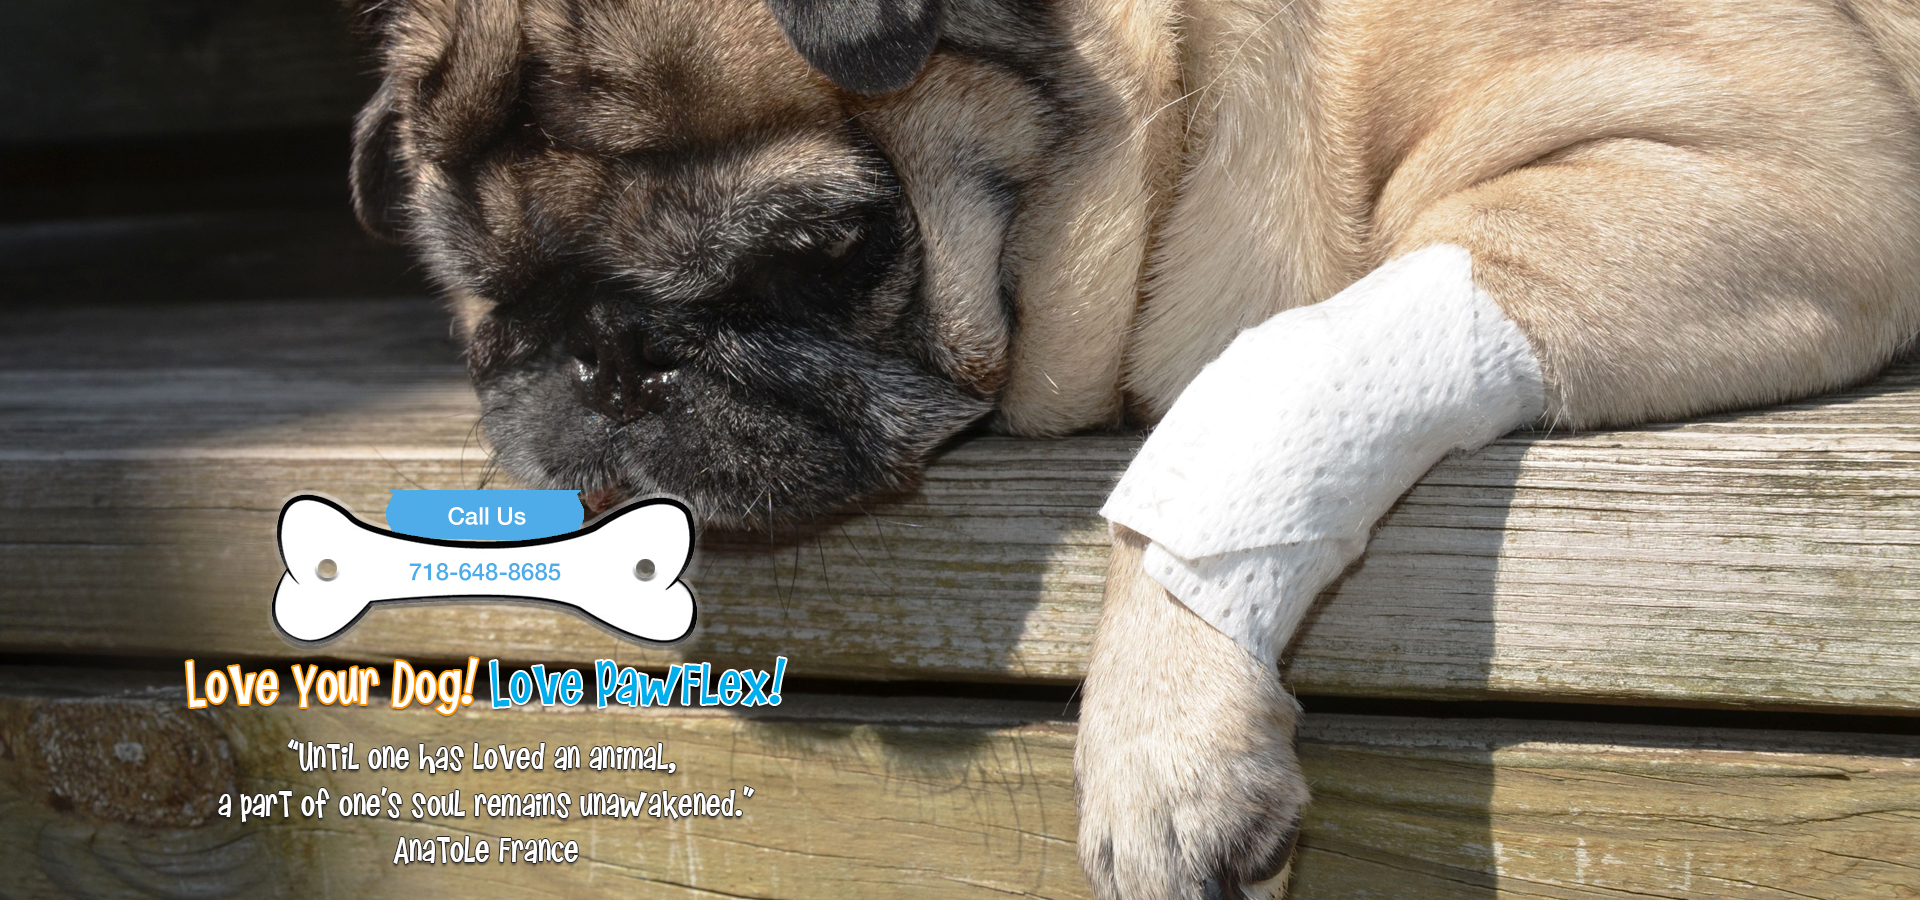 PawFlex, Paw Bandages for pets, Home Banner